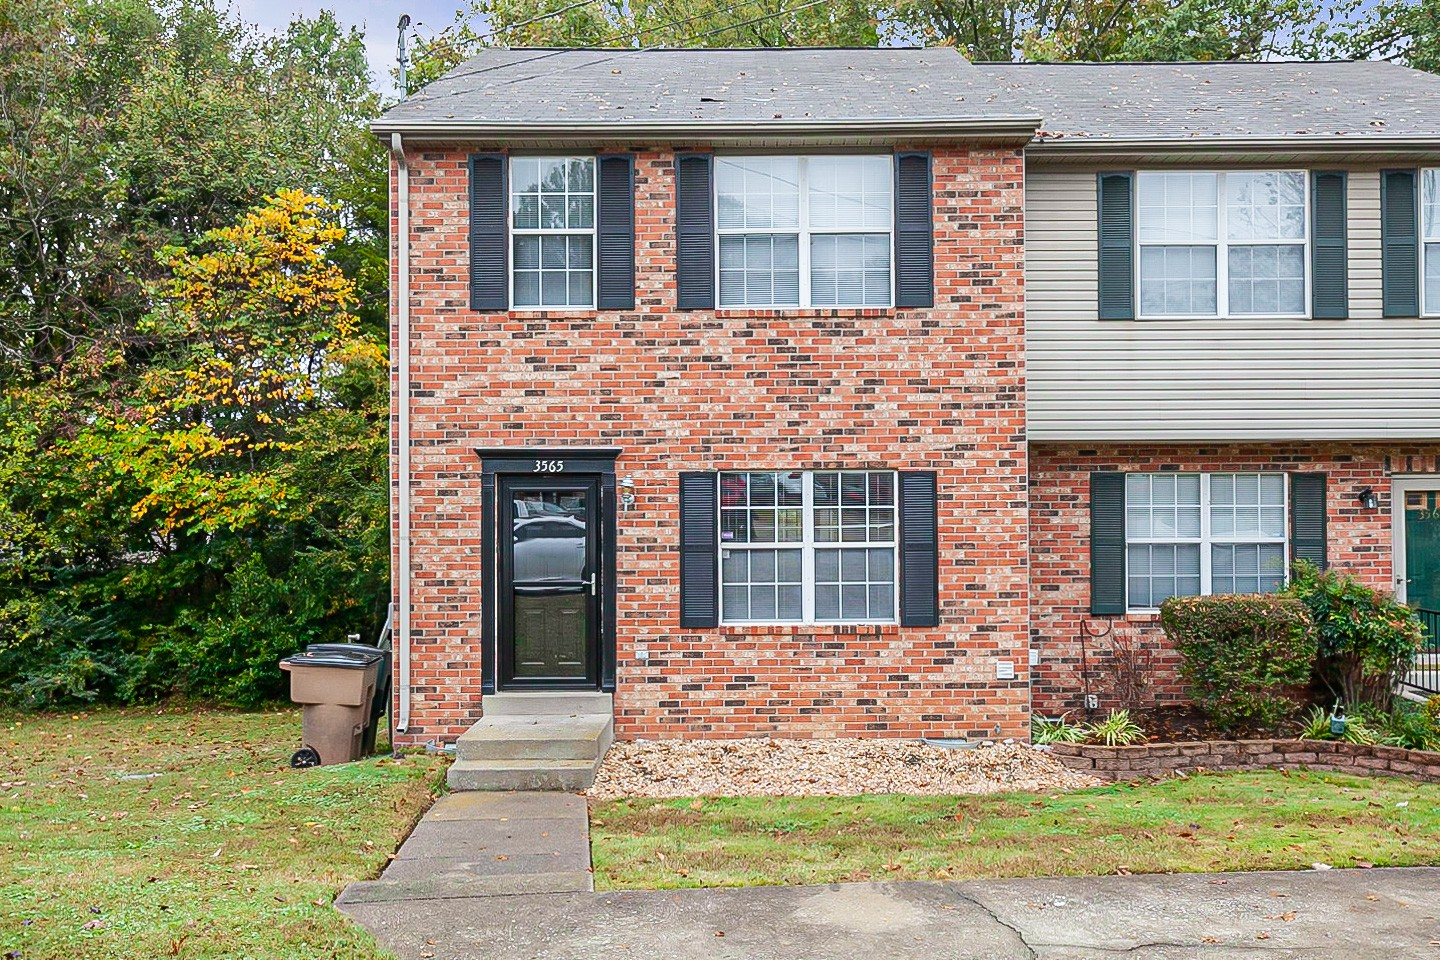 This Nashville cul-de-sac home has two stories. This home is vacant and cleaned regularly.